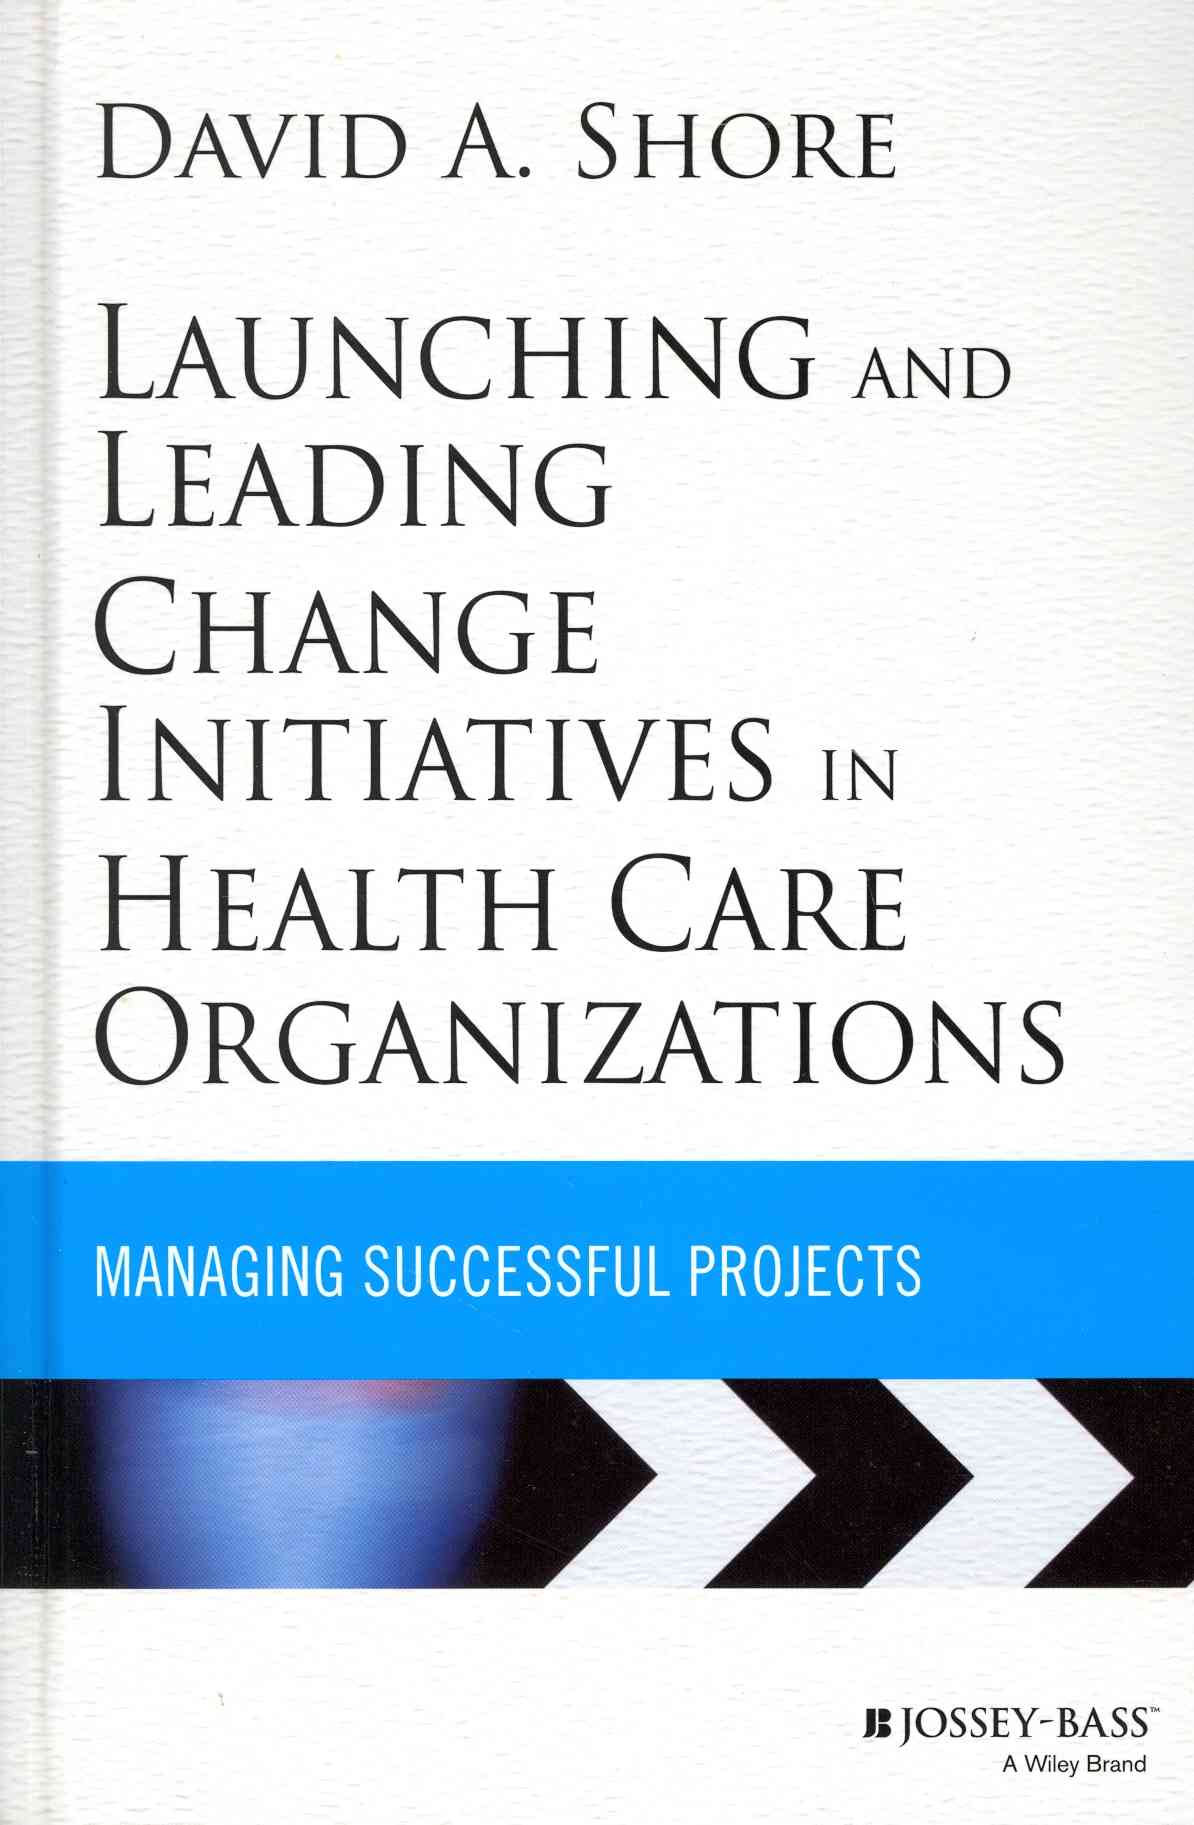 Launching and Leading Change Initiatives in Health Care Organizations By Shore, David A.